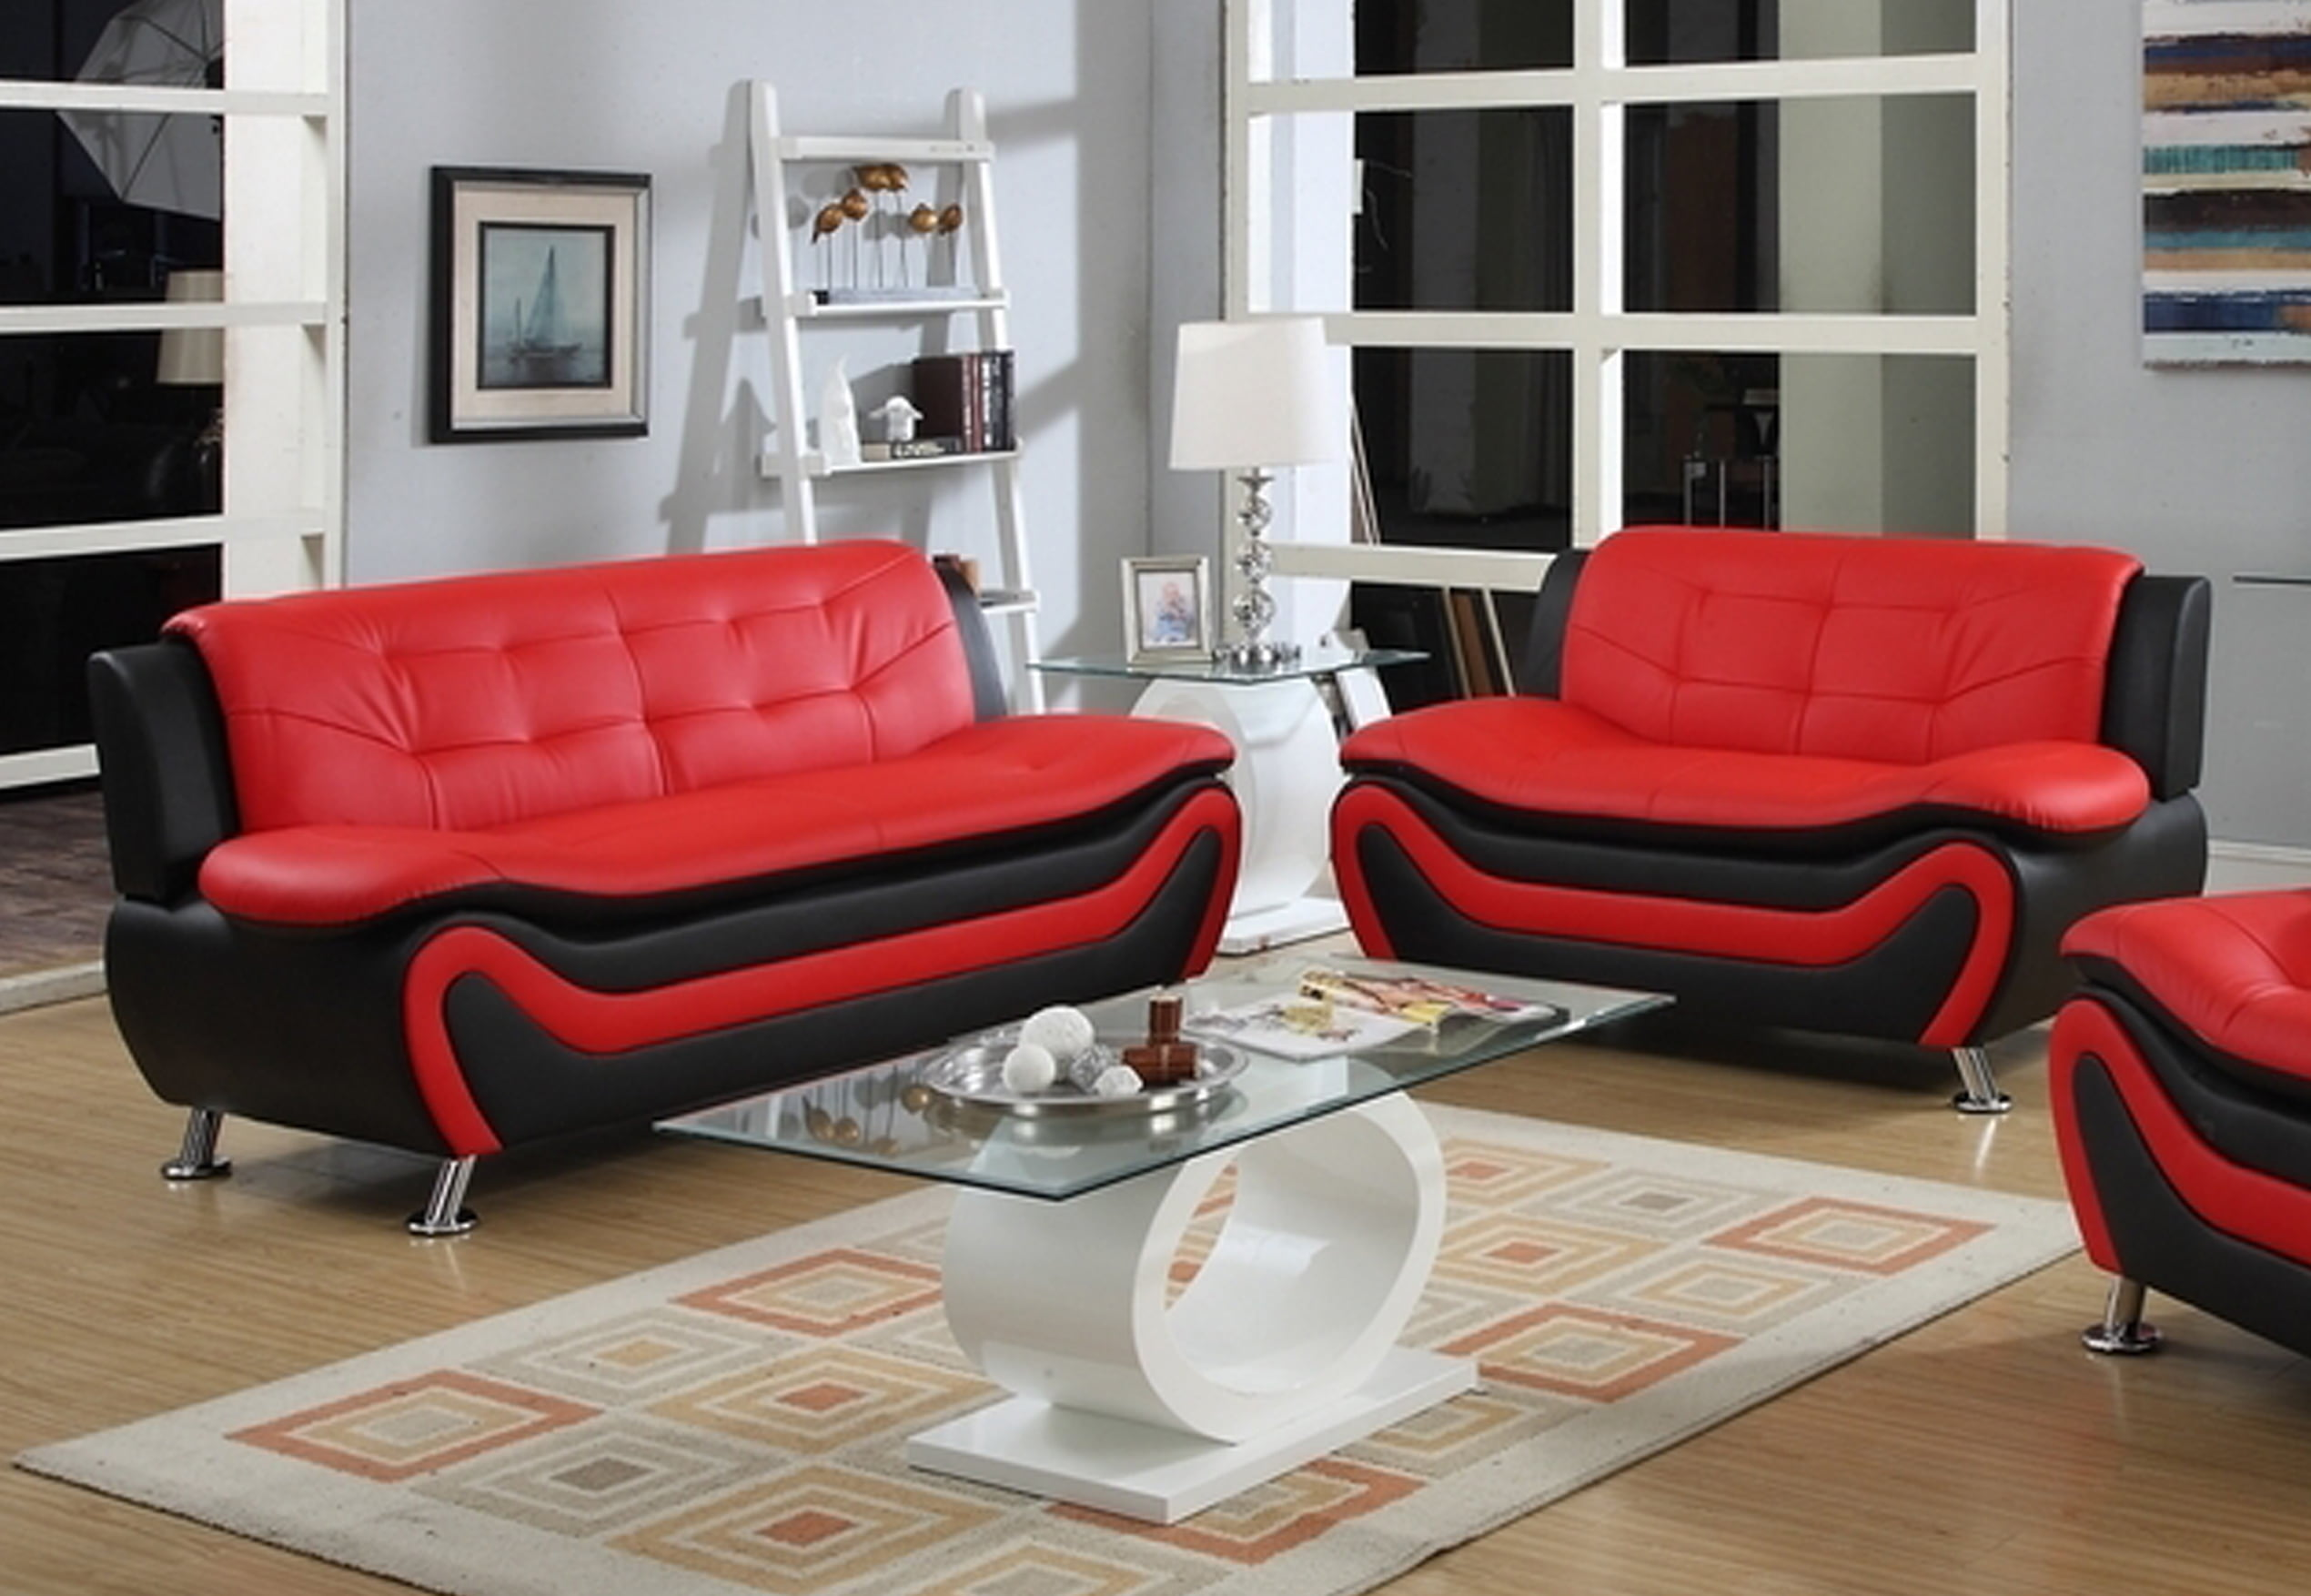 modern living room black and red. Frady 2 Pc Black And Red Faux Leather Modern Living Room Sofa Loveseat Set - Walmart.com